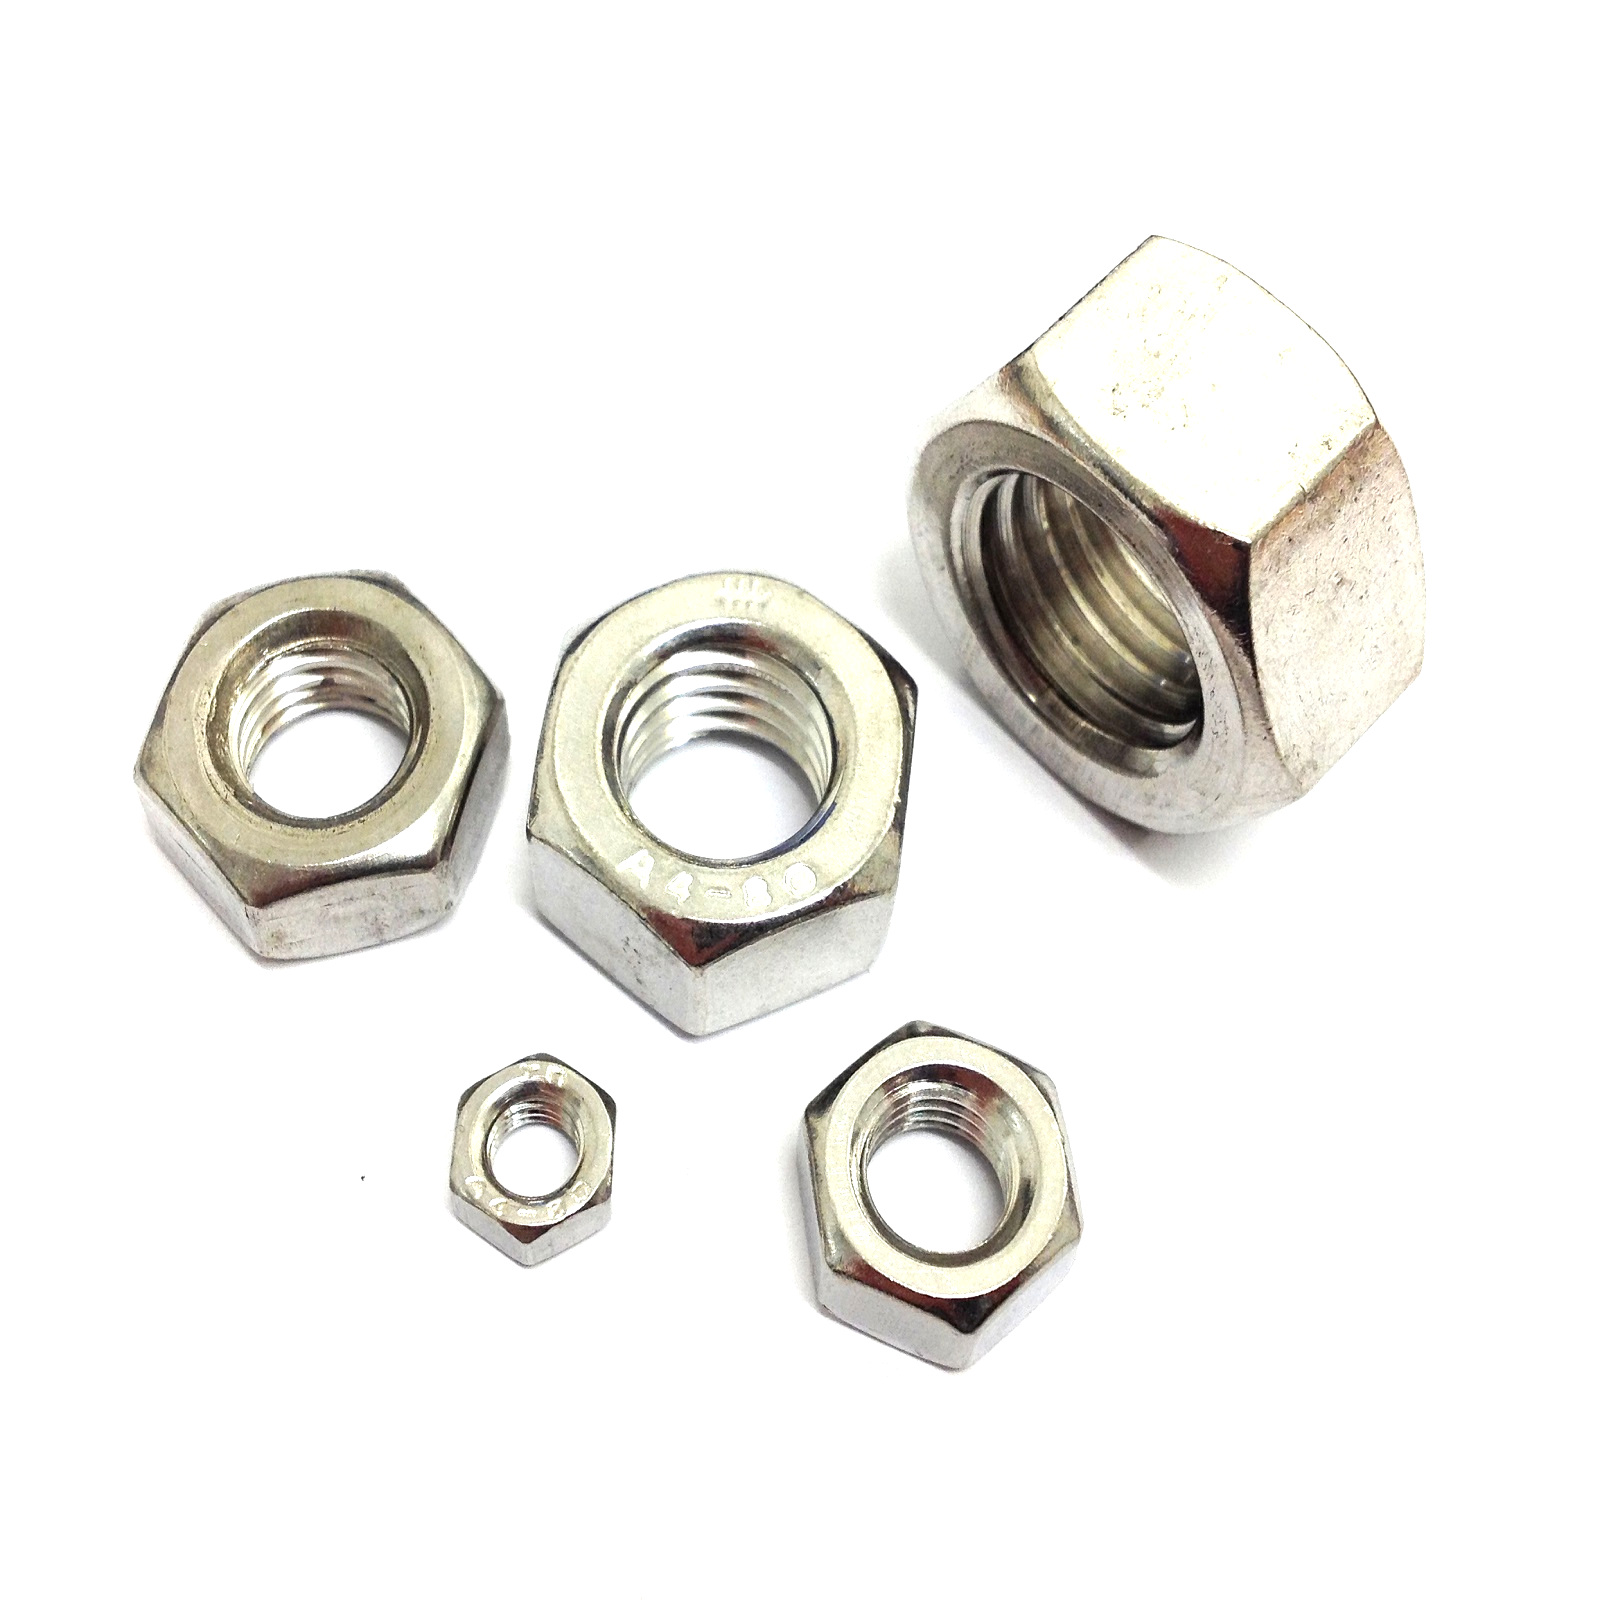 A4 STAINLESS STEEL Threaded Steel Bar Stainless ROD M4 M5 M6 M8 M10 M12 M16 M20